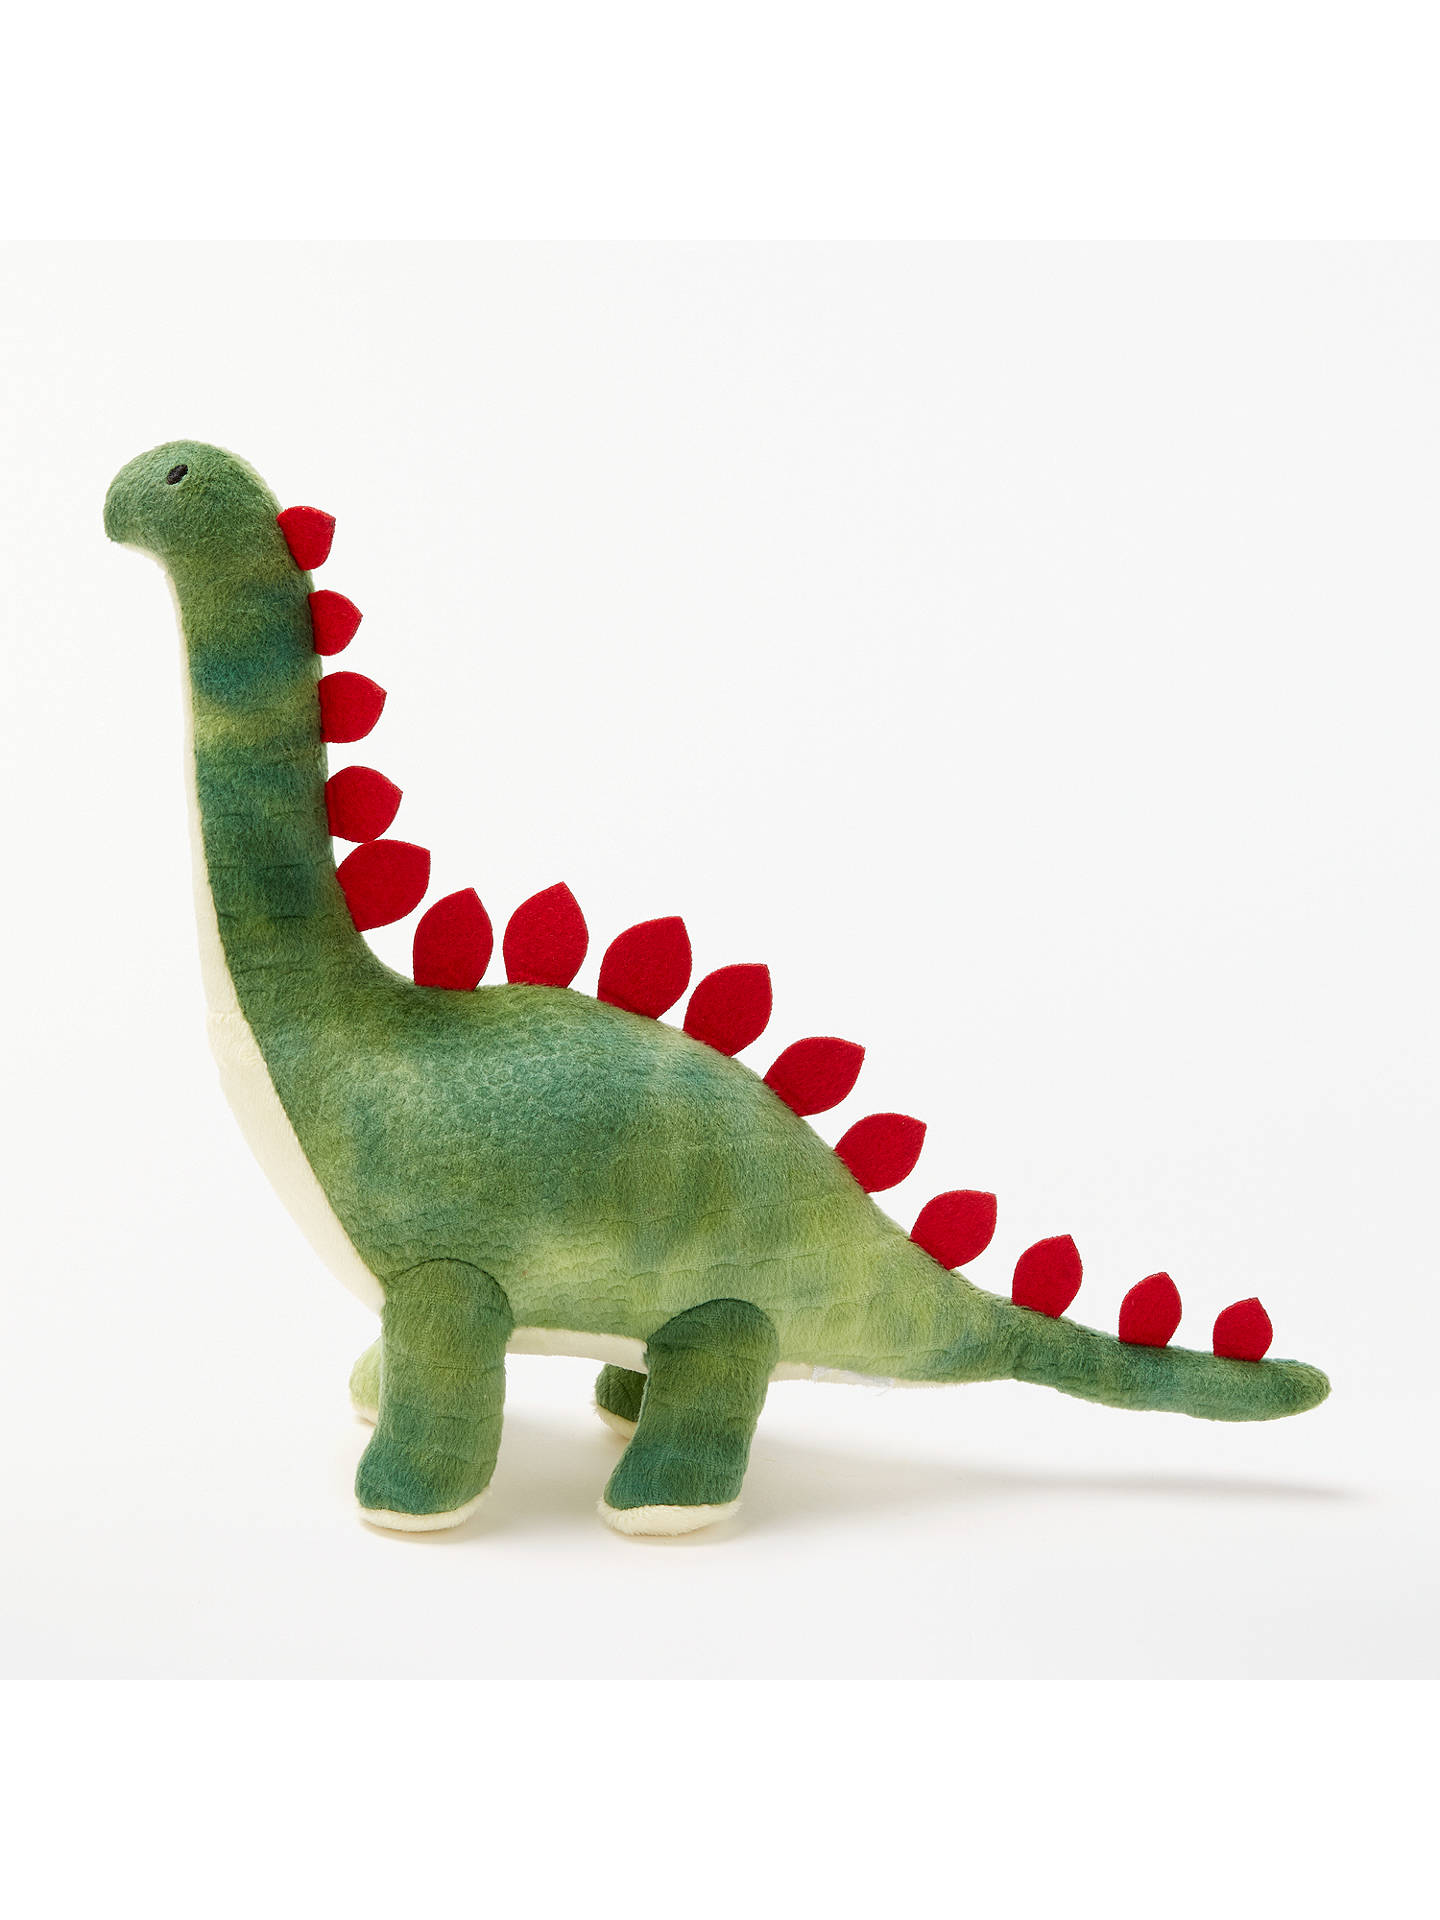 BuyJohn Lewis & Partners Textured Dinosaur Plush Soft Toy, Green Online at johnlewis.com